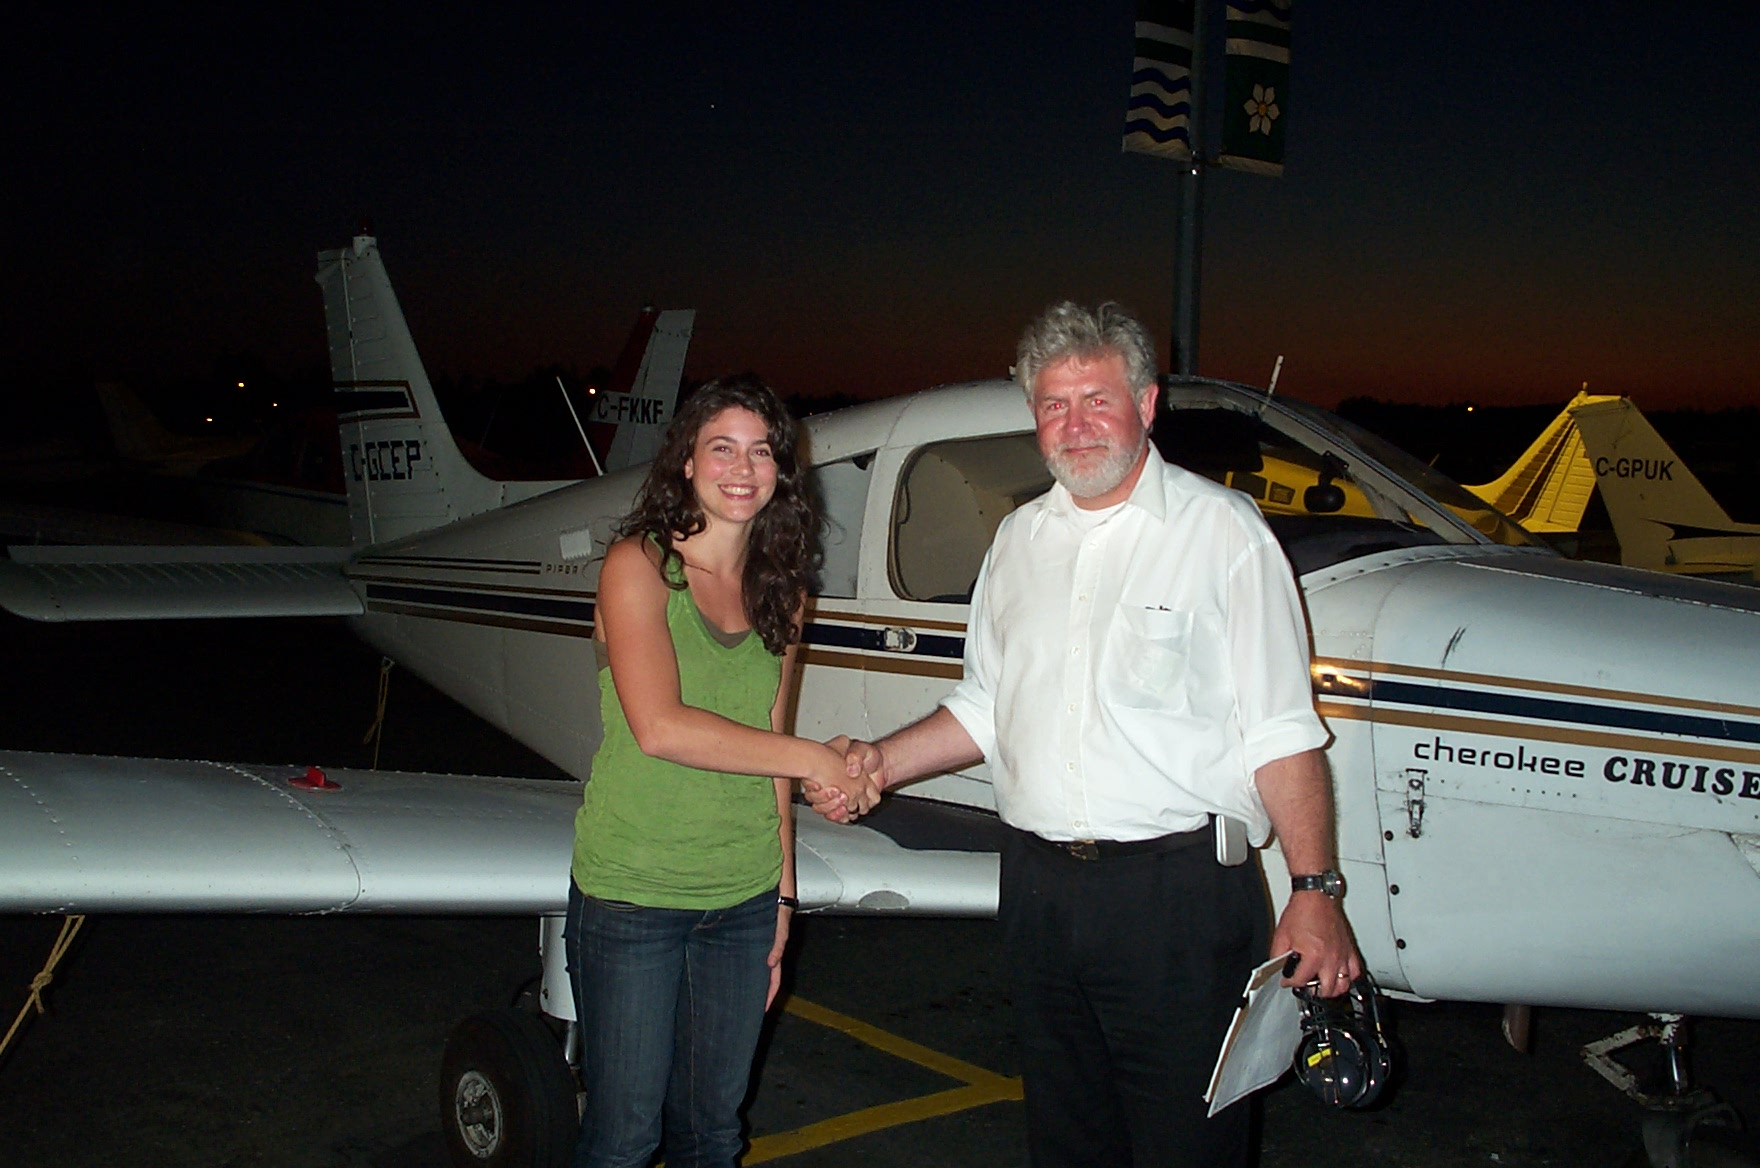 Karlee Janzen receives contratulations from Pilot Examiner Paul Harris after the successful completion of Karlee's Private Pilot Flight Test on July 16, 2010. Congrats also to Karlee's Flight Instructor, Mayank Mittal. Langley Flying School.